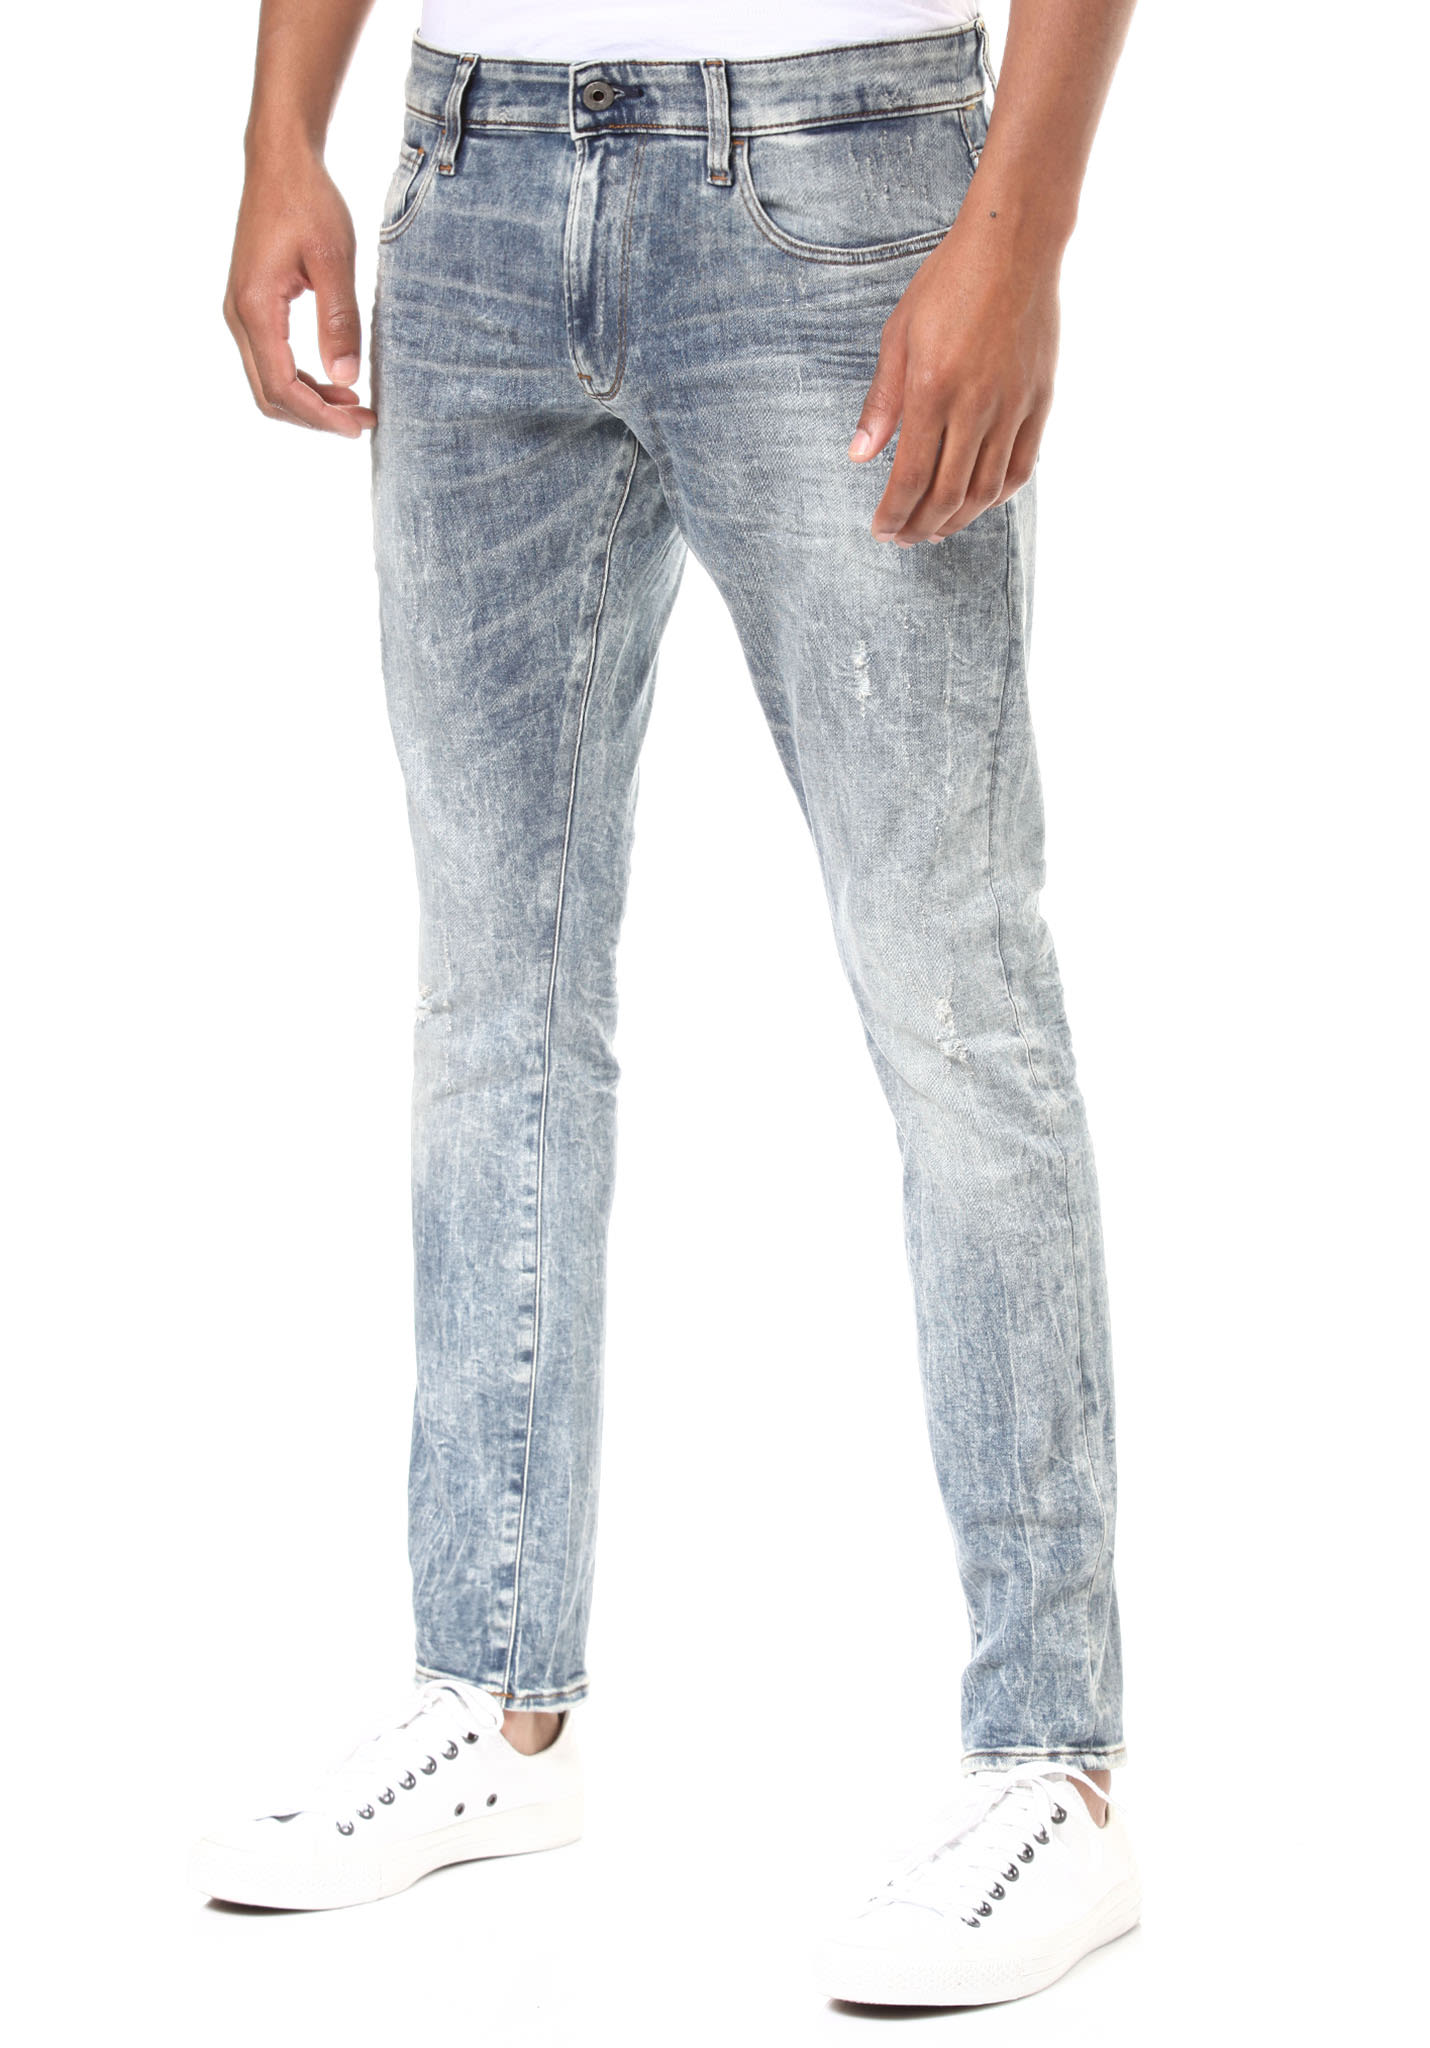 7fe3b518785ece G-STAR 3301 Deconstructed Skinny-Lor Superstretch - Denim Jeans for Men -  Blue - Planet Sports